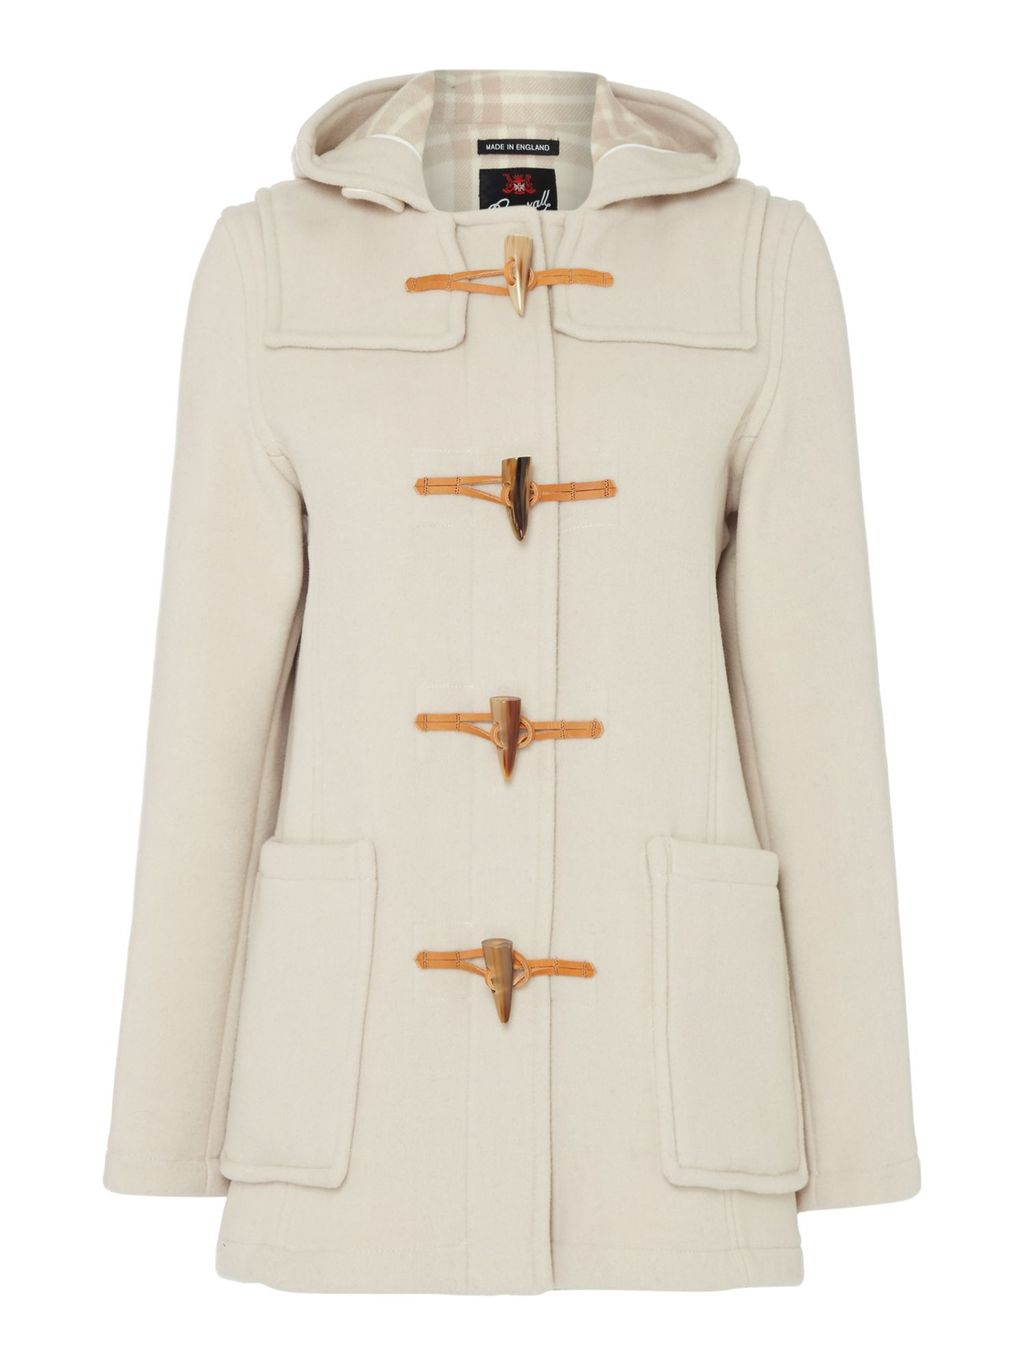 Mid Length Slim Duffle Coat, Oyster - pattern: plain; collar: funnel; back detail: hood; style: duffle coat; length: mid thigh; predominant colour: stone; occasions: casual, creative work; fit: straight cut (boxy); fibres: wool - mix; sleeve length: long sleeve; sleeve style: standard; collar break: high; pattern type: fabric; texture group: woven bulky/heavy; season: s/s 2016; wardrobe: highlight; embellishment location: hip